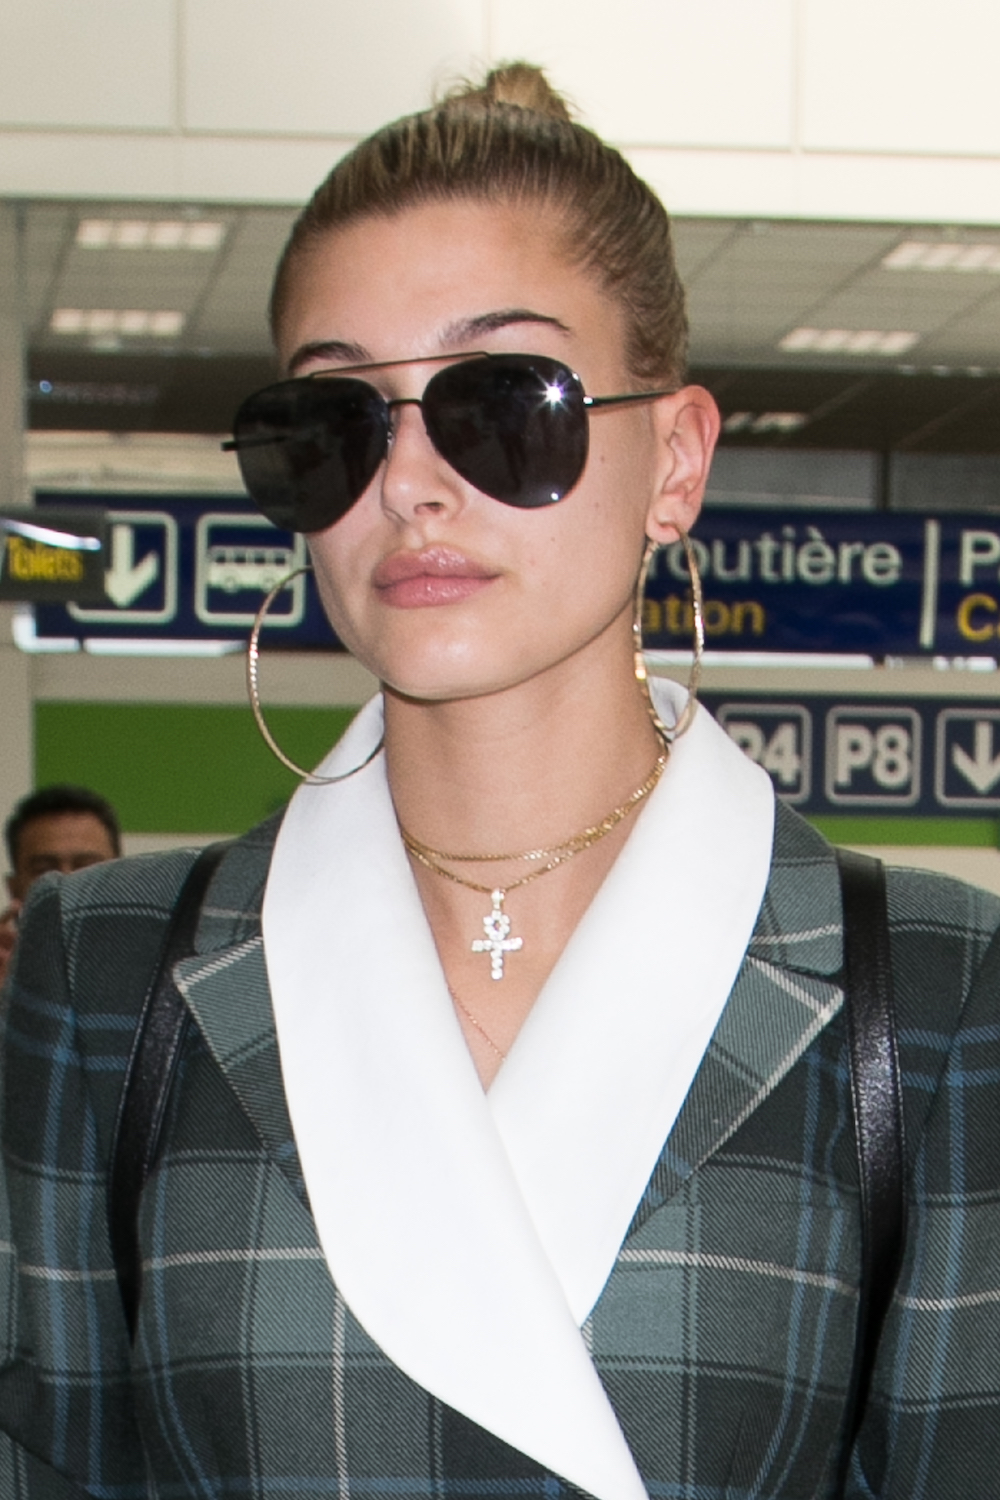 CANNES, FRANCE - MAY 17:  Hailey Baldwin arrives at Nice airport during the 70th annual Cannes Film Festival on May 17, 2017 in Cannes, France.  (Photo by Marc Piasecki/GC Images)